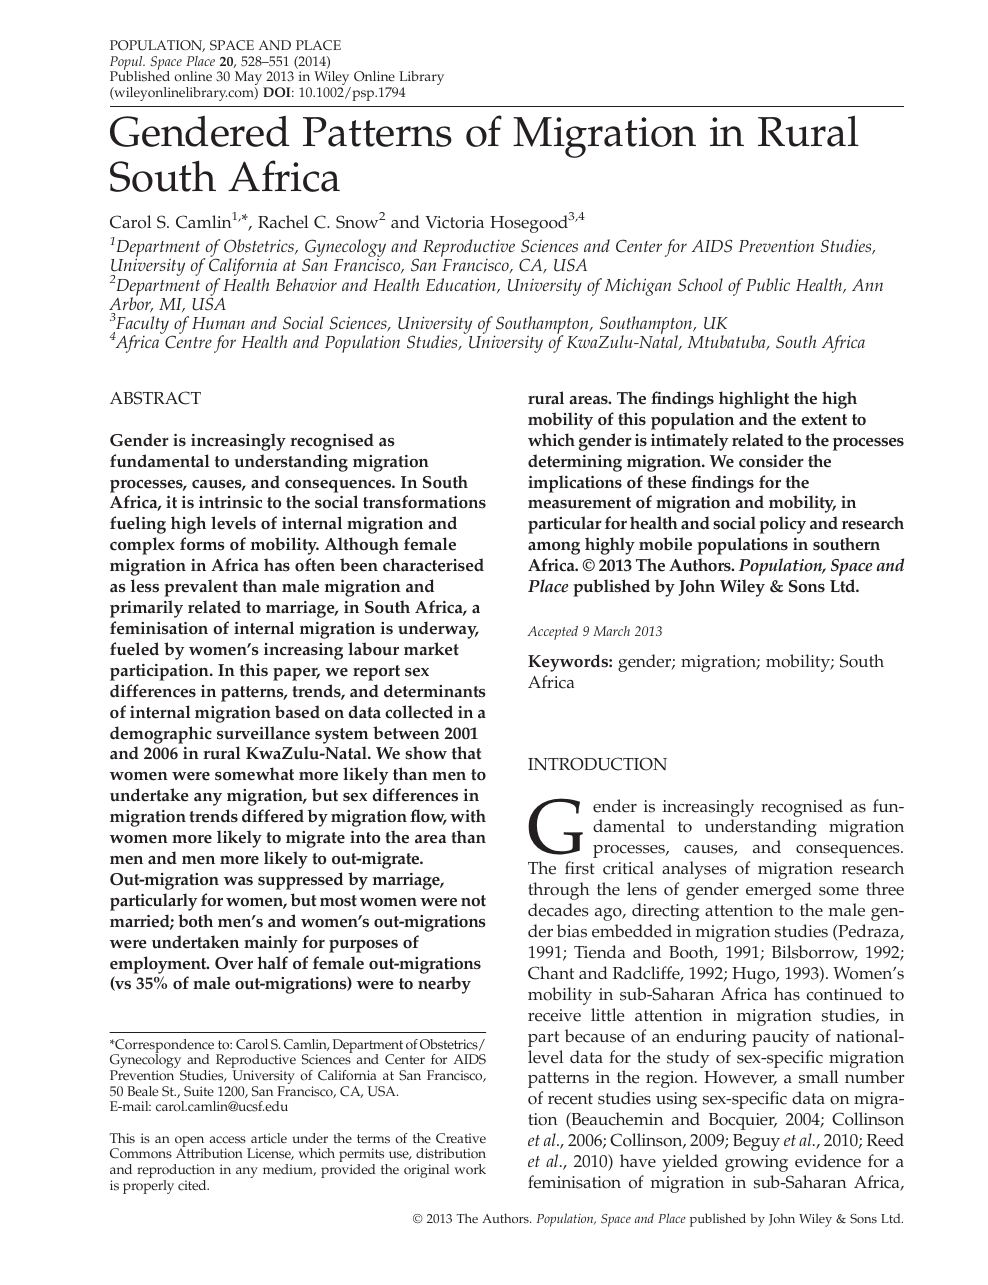 Gendered Patterns of Migration in Rural South Africa – topic of